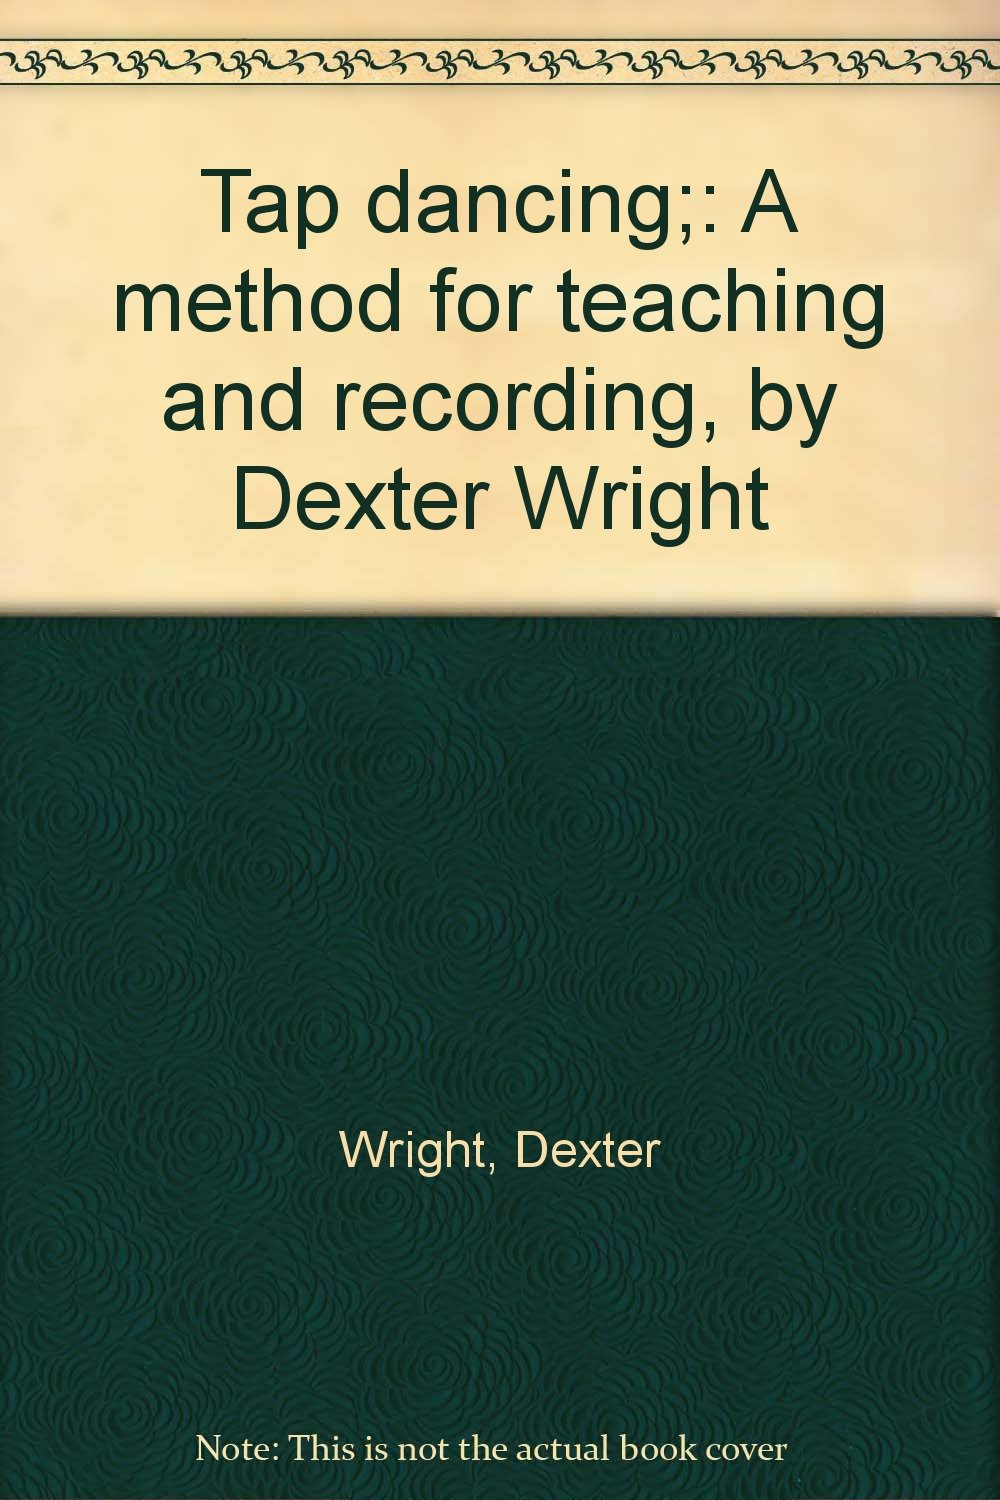 Tap dancing;: A method for teaching and recording, by Dexter Wright